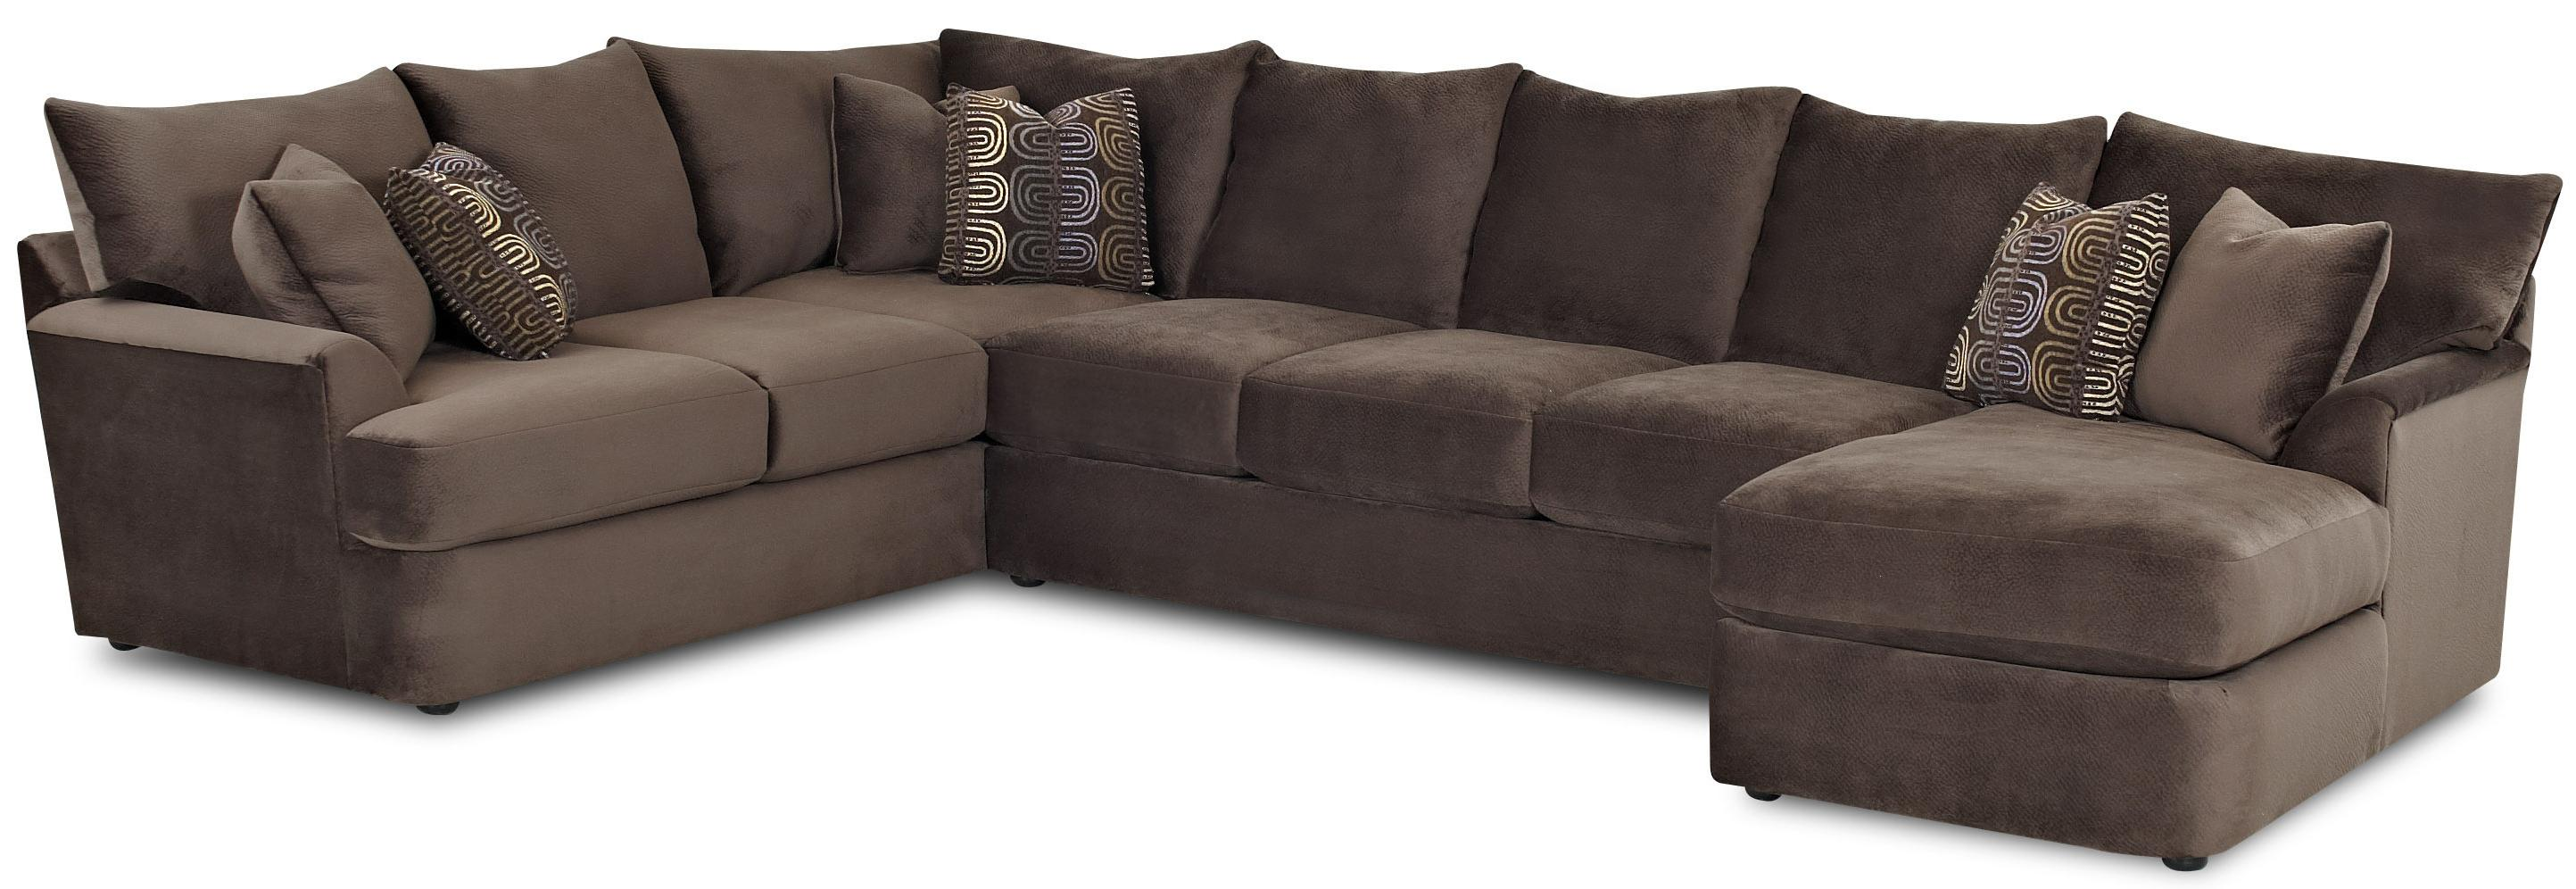 L Shaped Sectional Sofa With Right Chaise By Klaussner